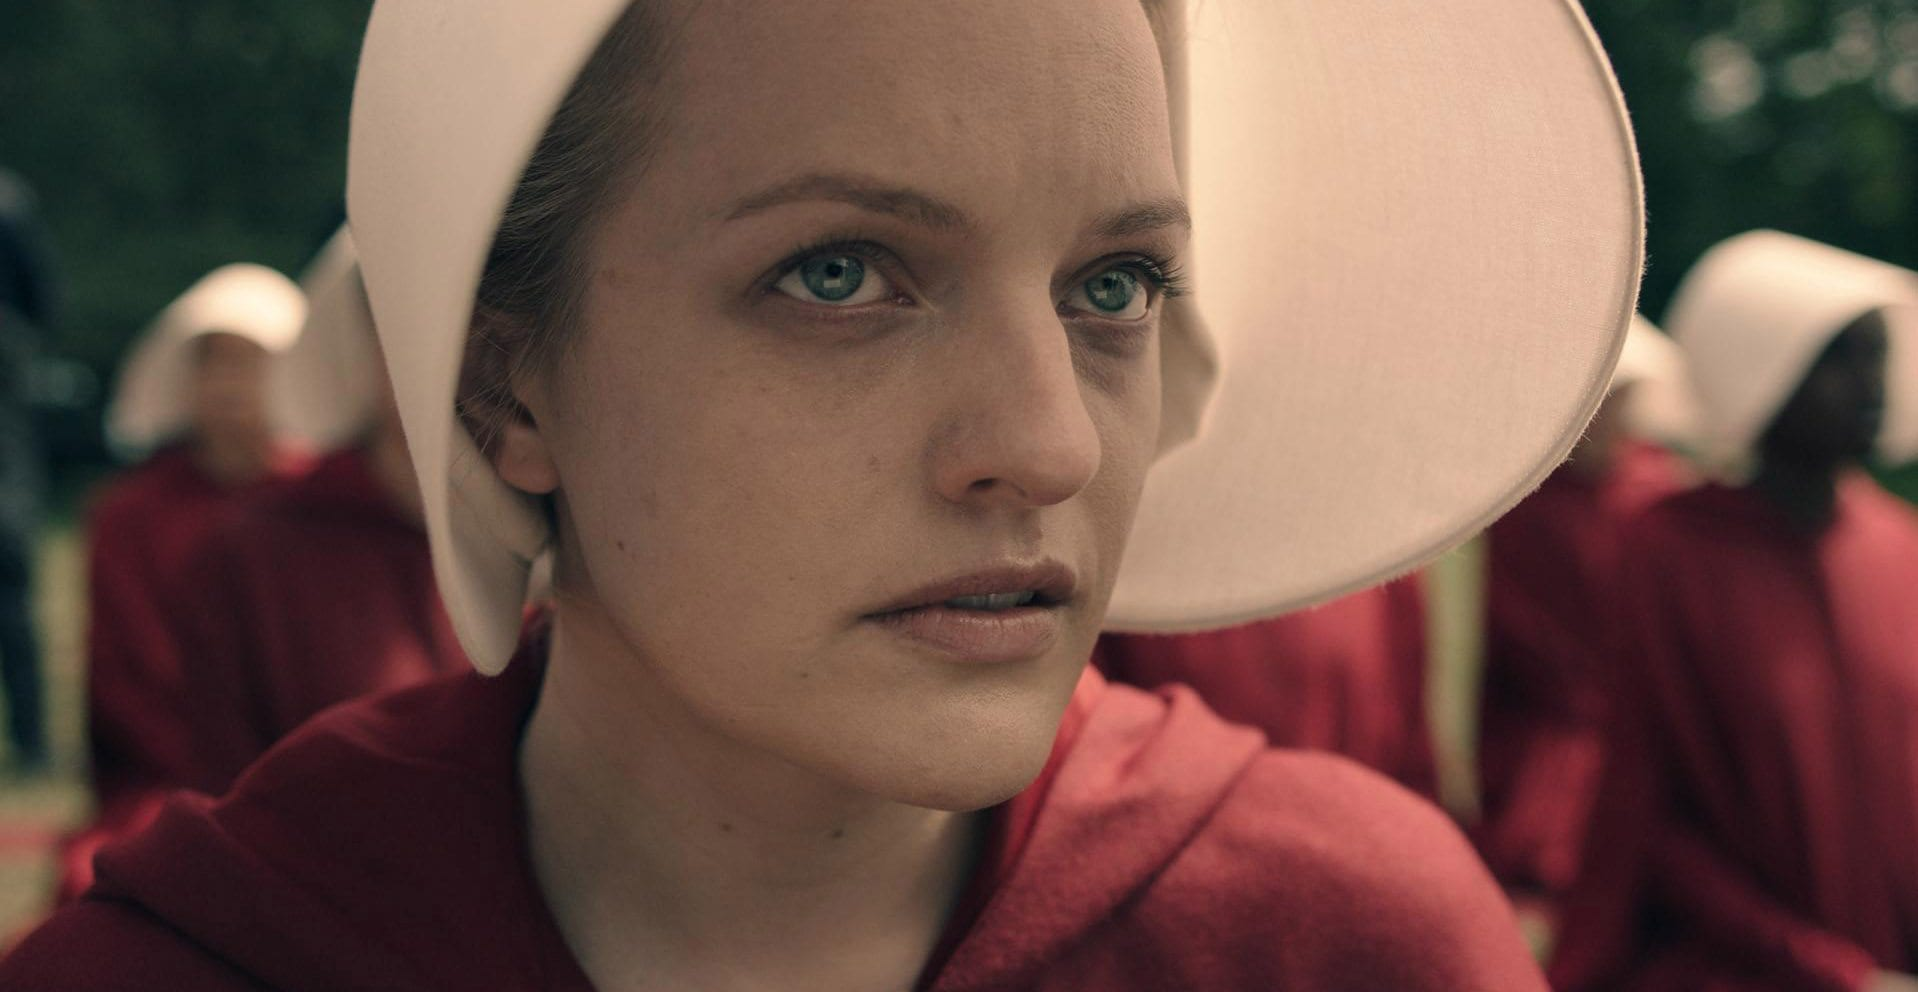 'The Handmaid's Tale' is set in a society ruled by a fundamentalist regime in which the few remaining fertile women are forced into sexual servitude.